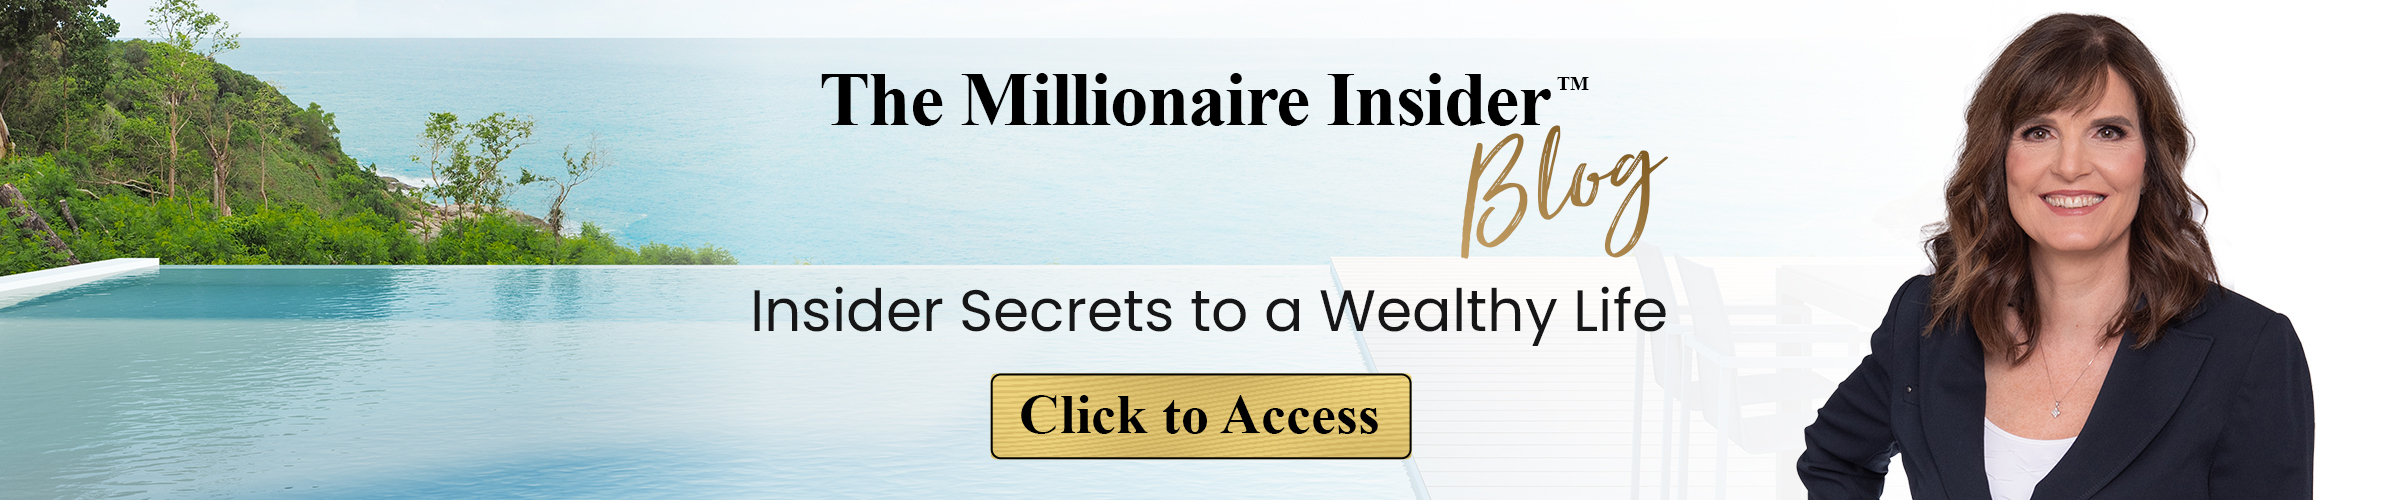 The Millionaire Insider Channel YouTube